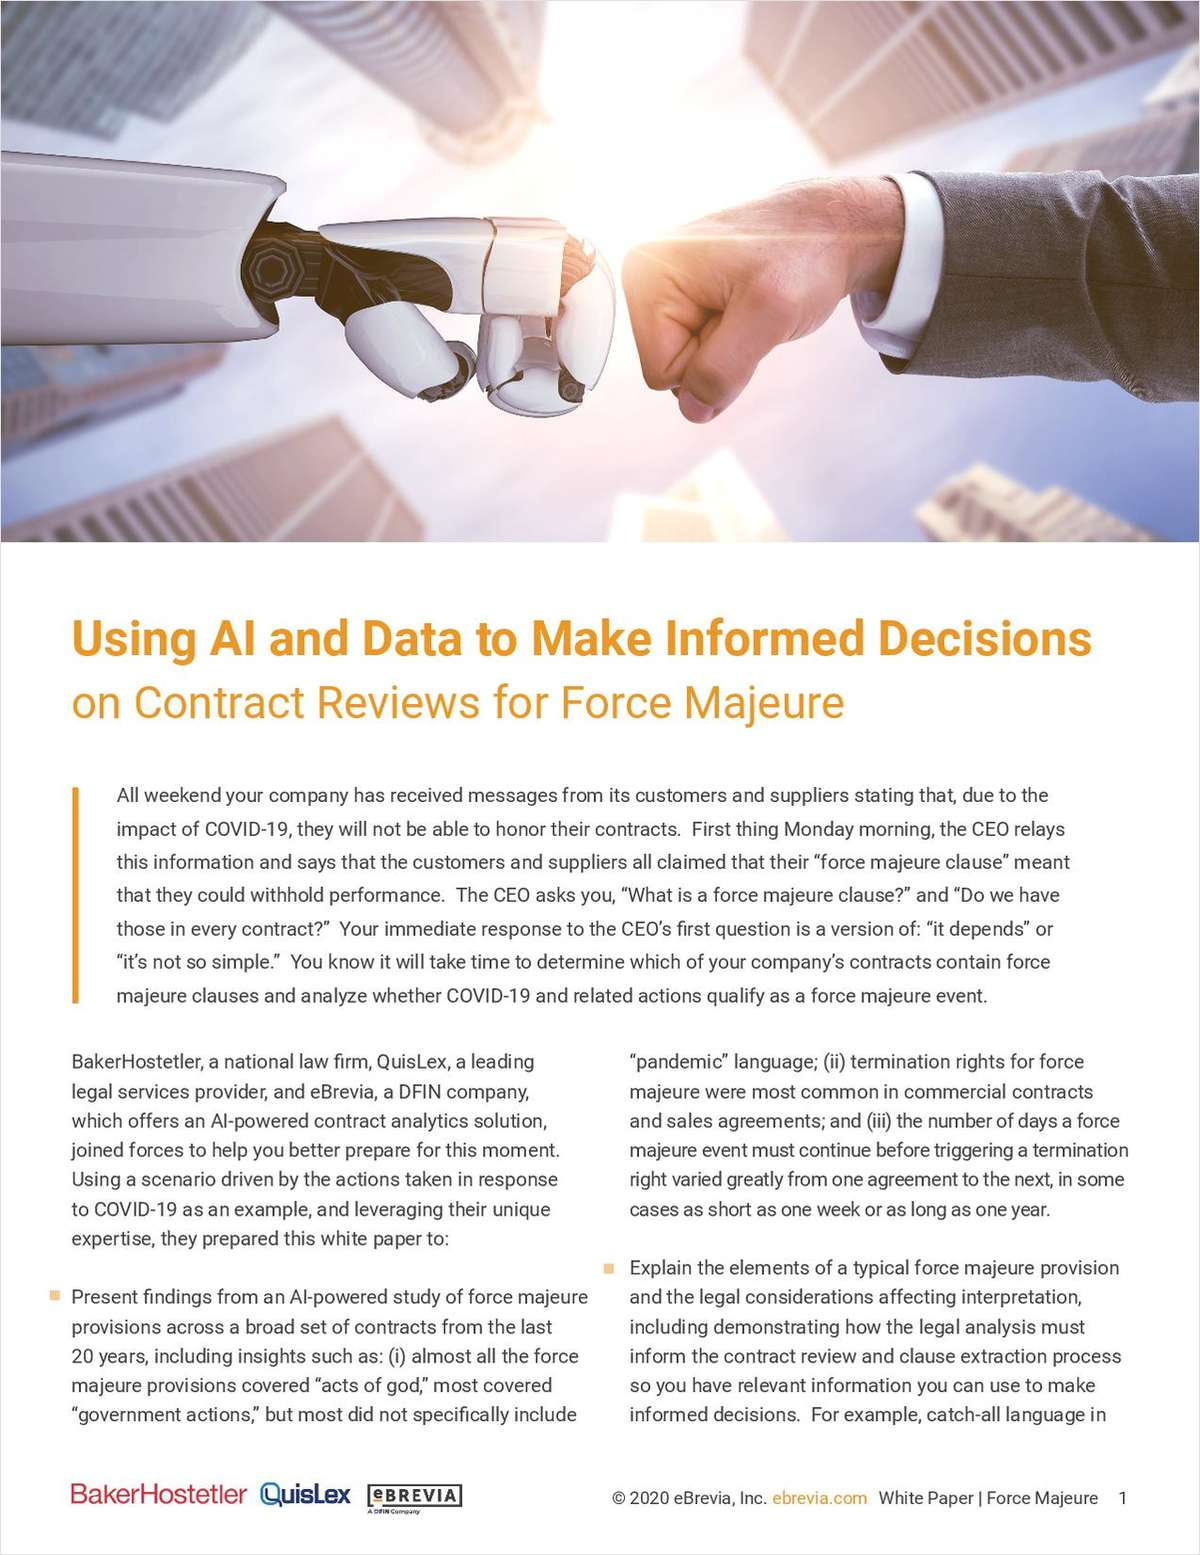 Using AI and Data to Make Informed Decisions on Contract Reviews for Force Majeure